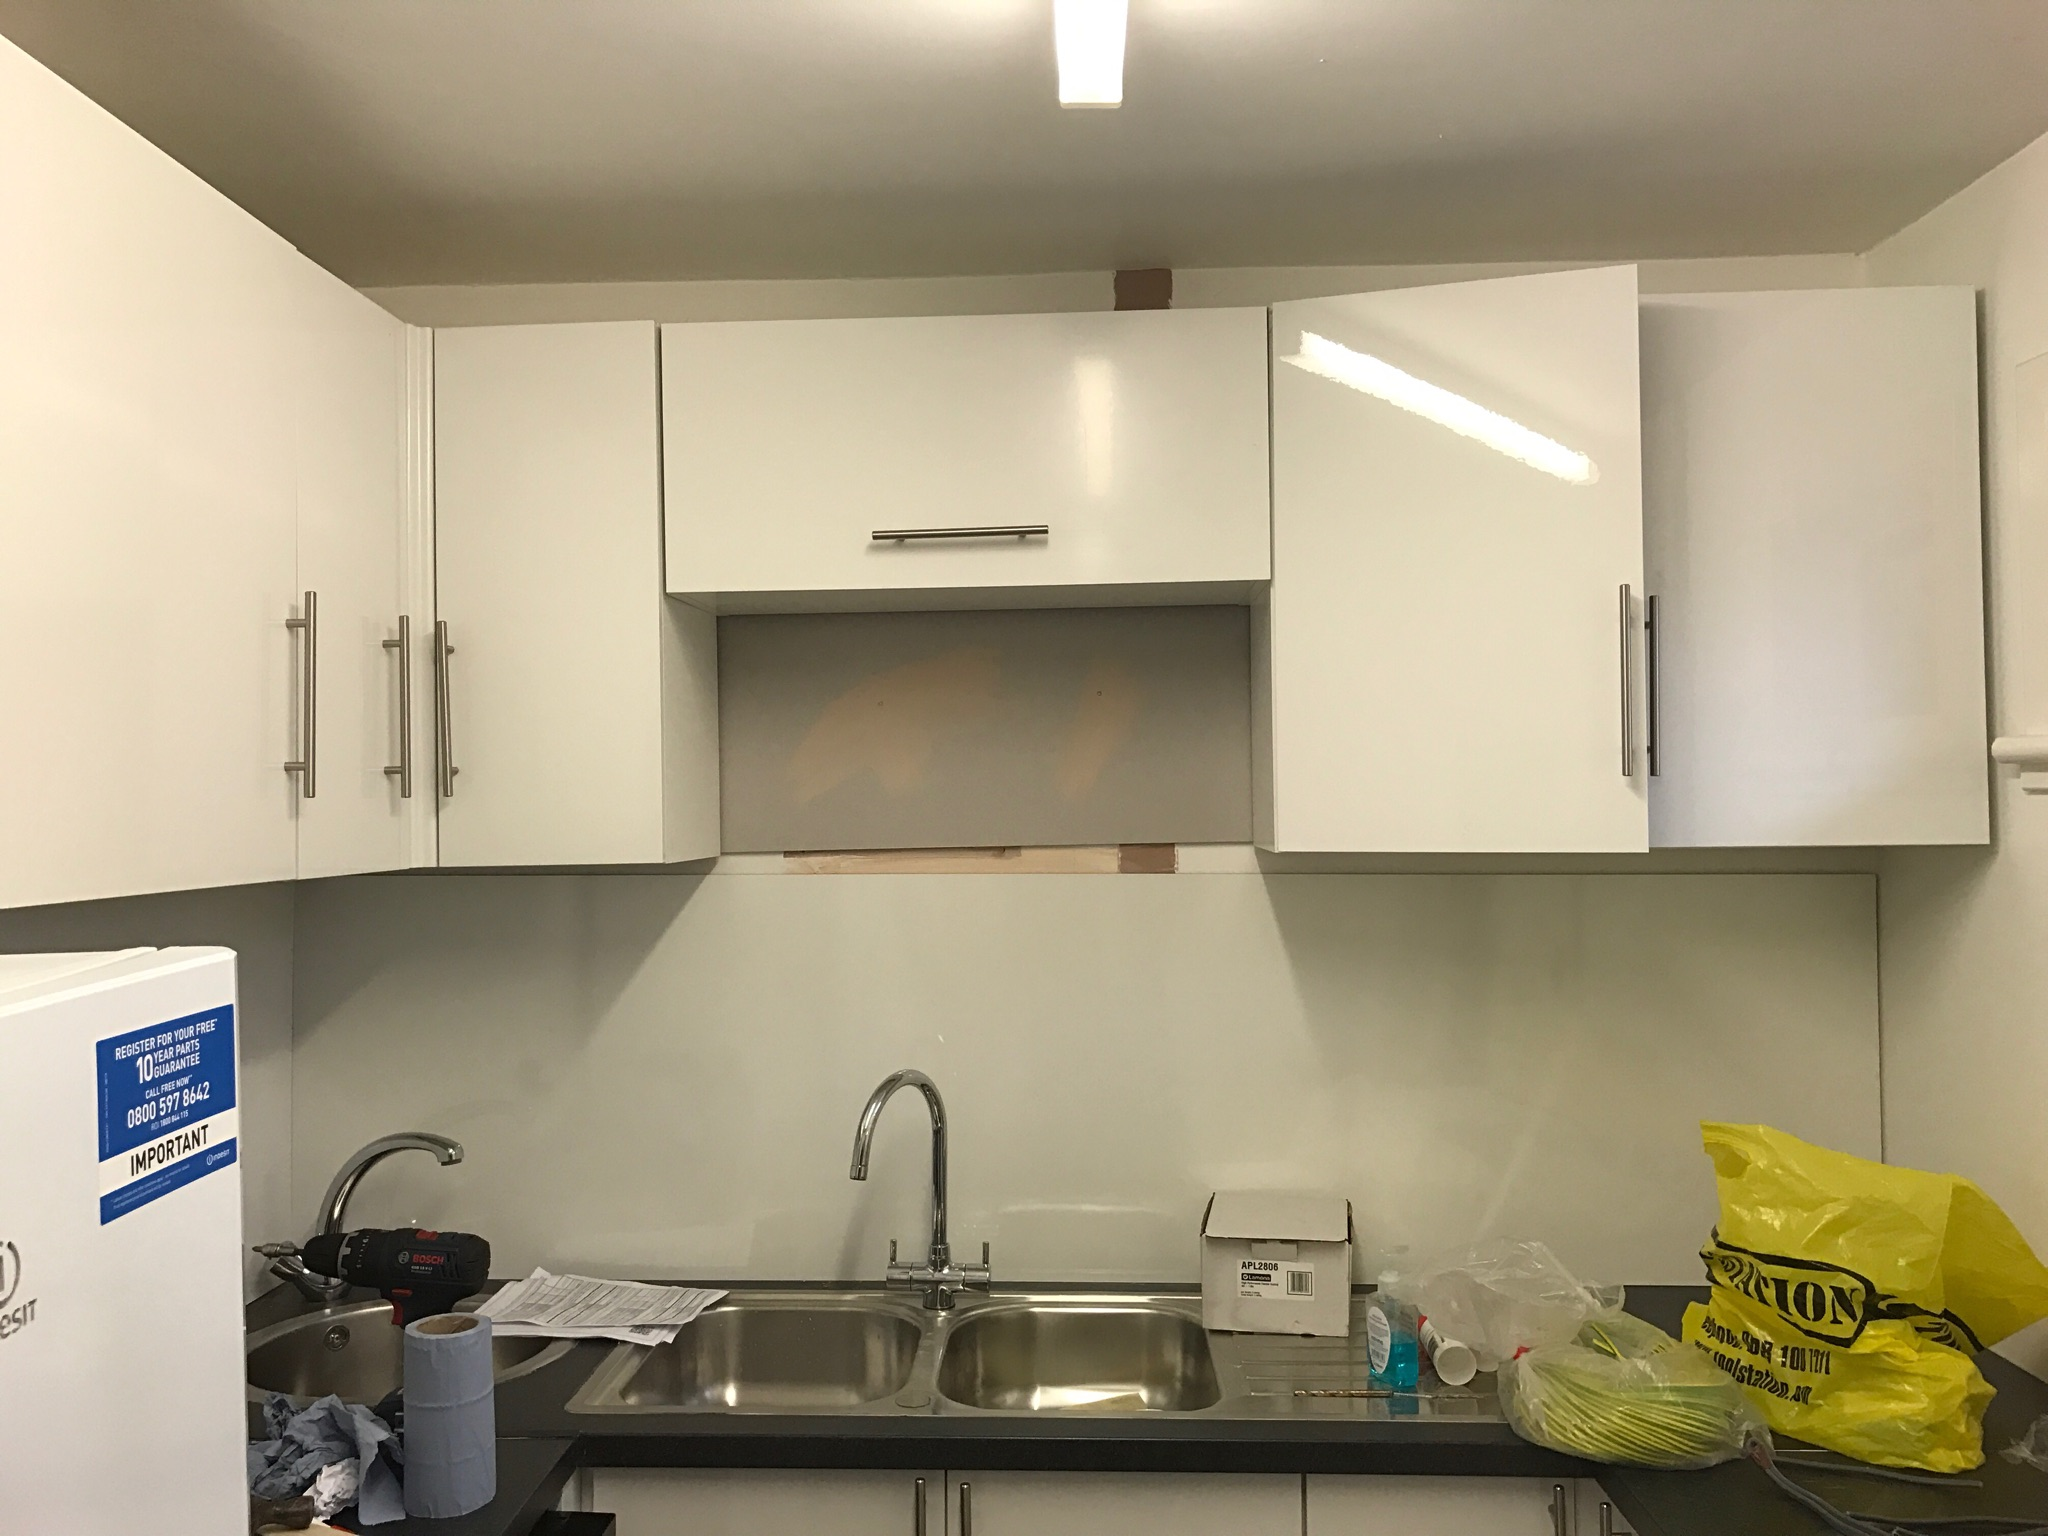 This is a kitchen we got a call for advise